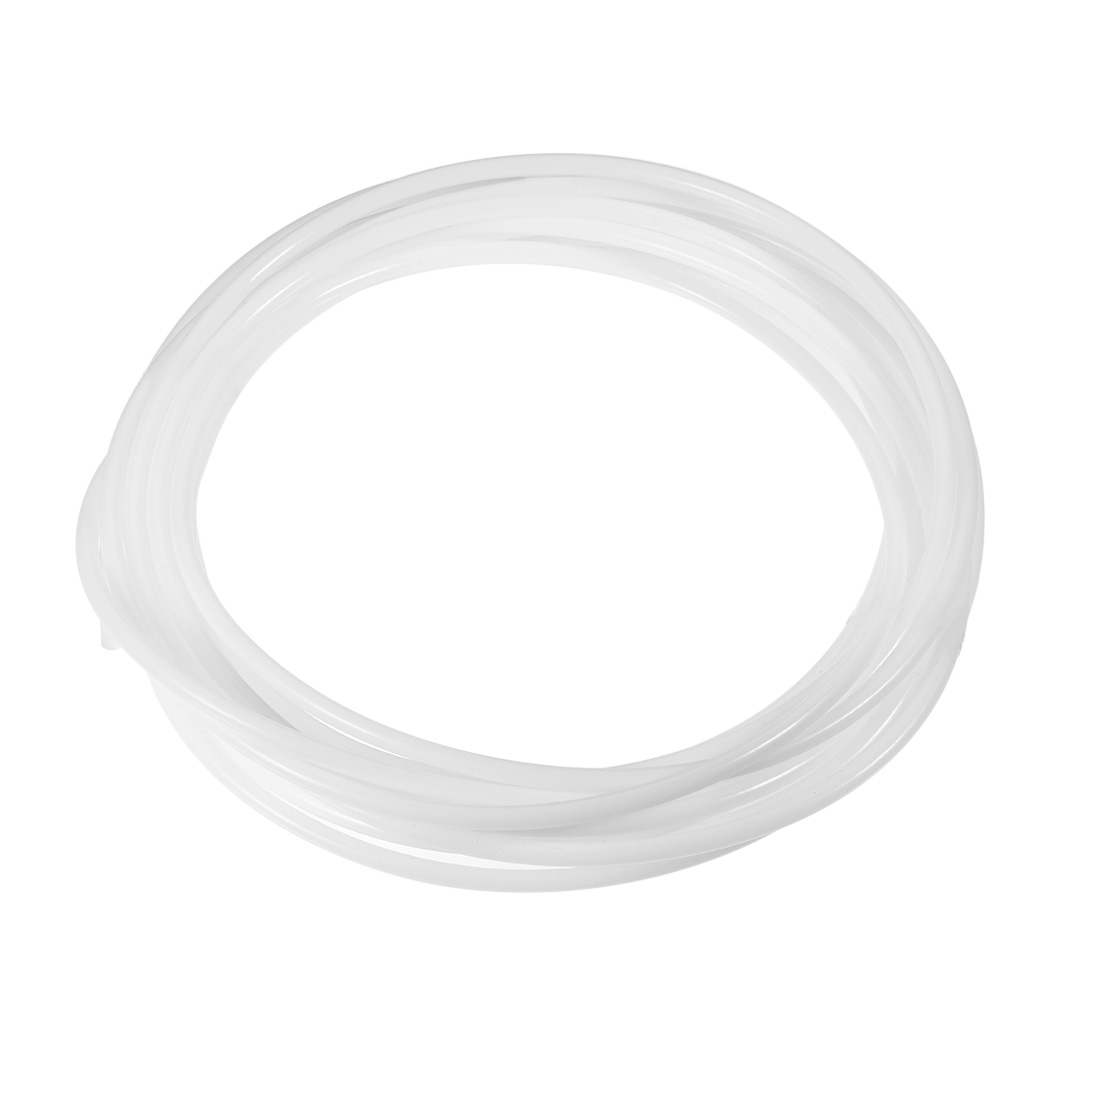 PTFE Tube 26Ft - ID 4mm x OD 6mm Fit 3mm Filament for 3D Printer White